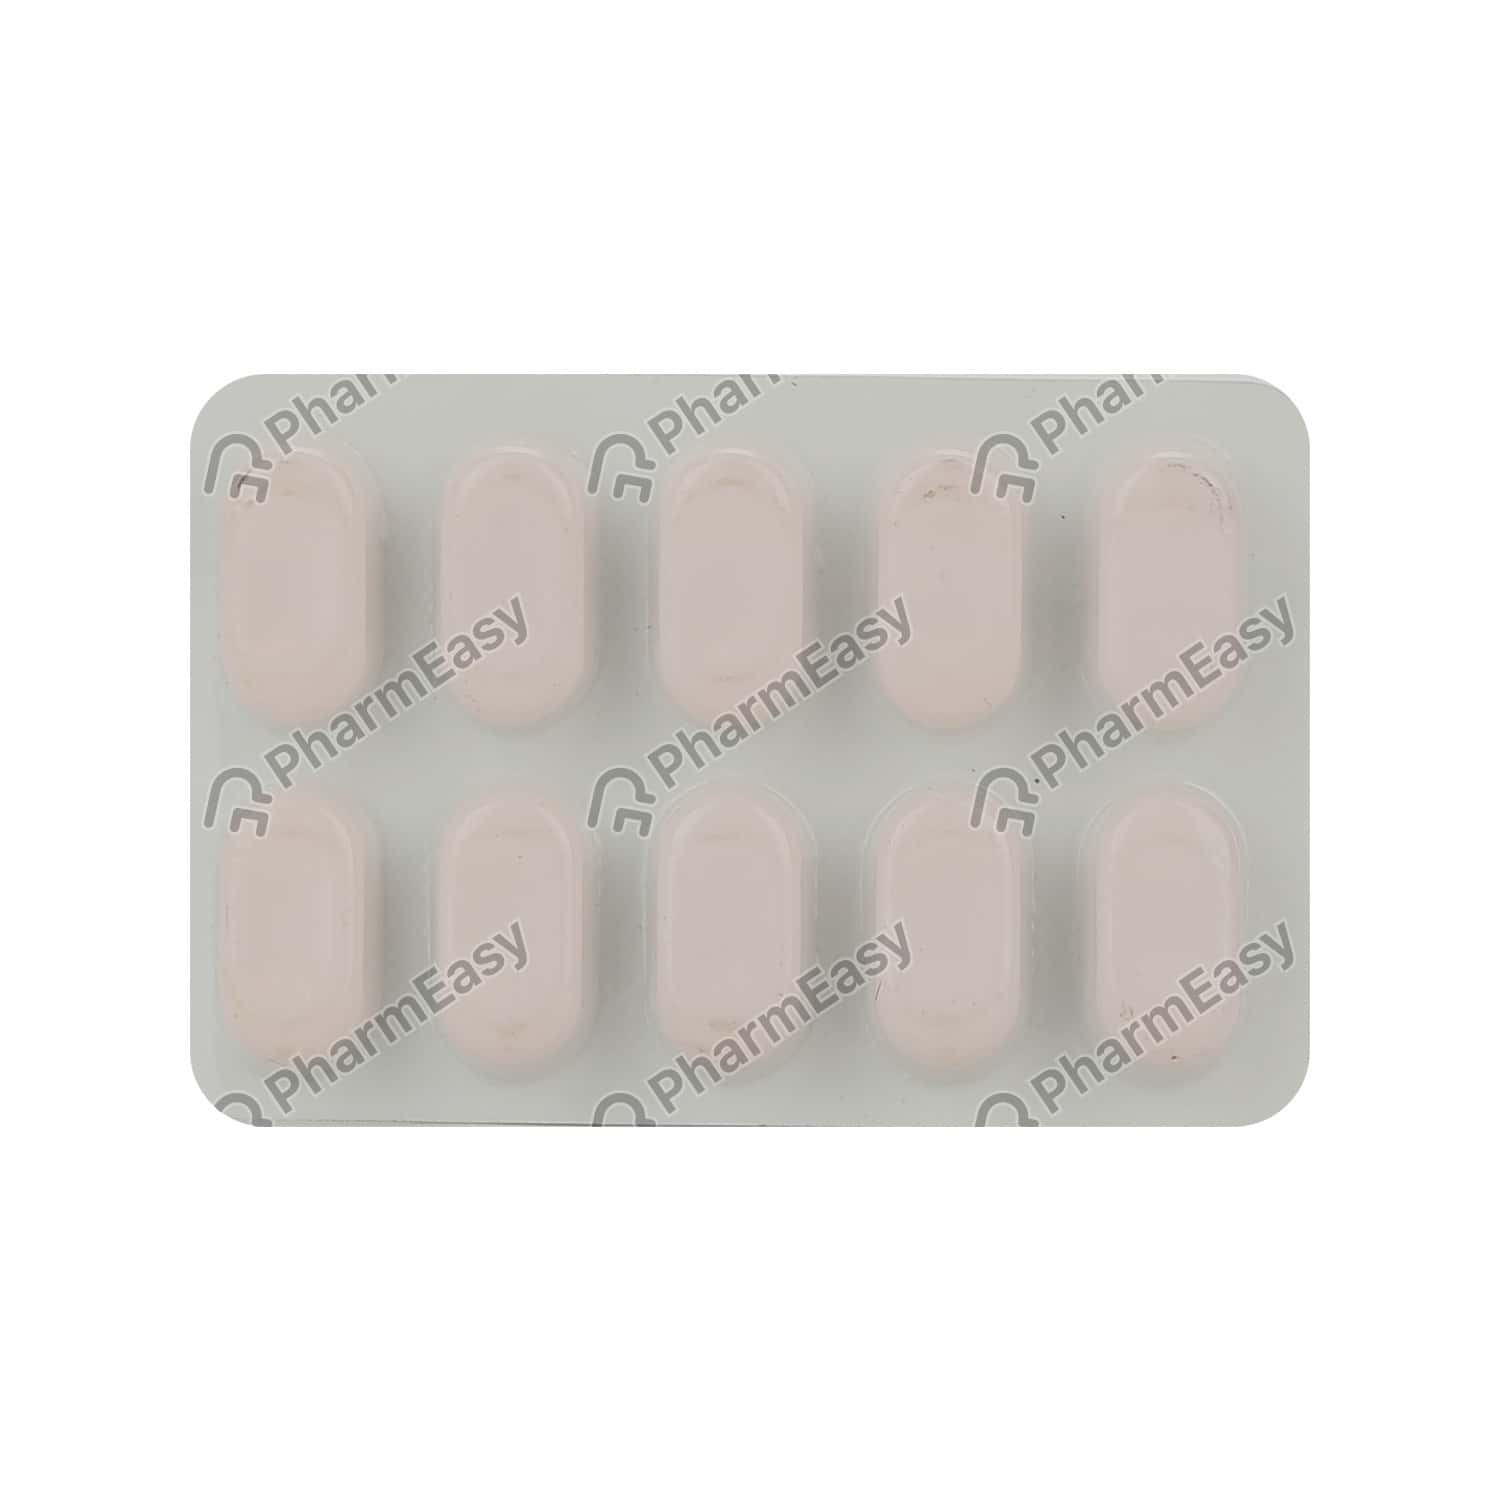 Oxring Od 600mg Tablet